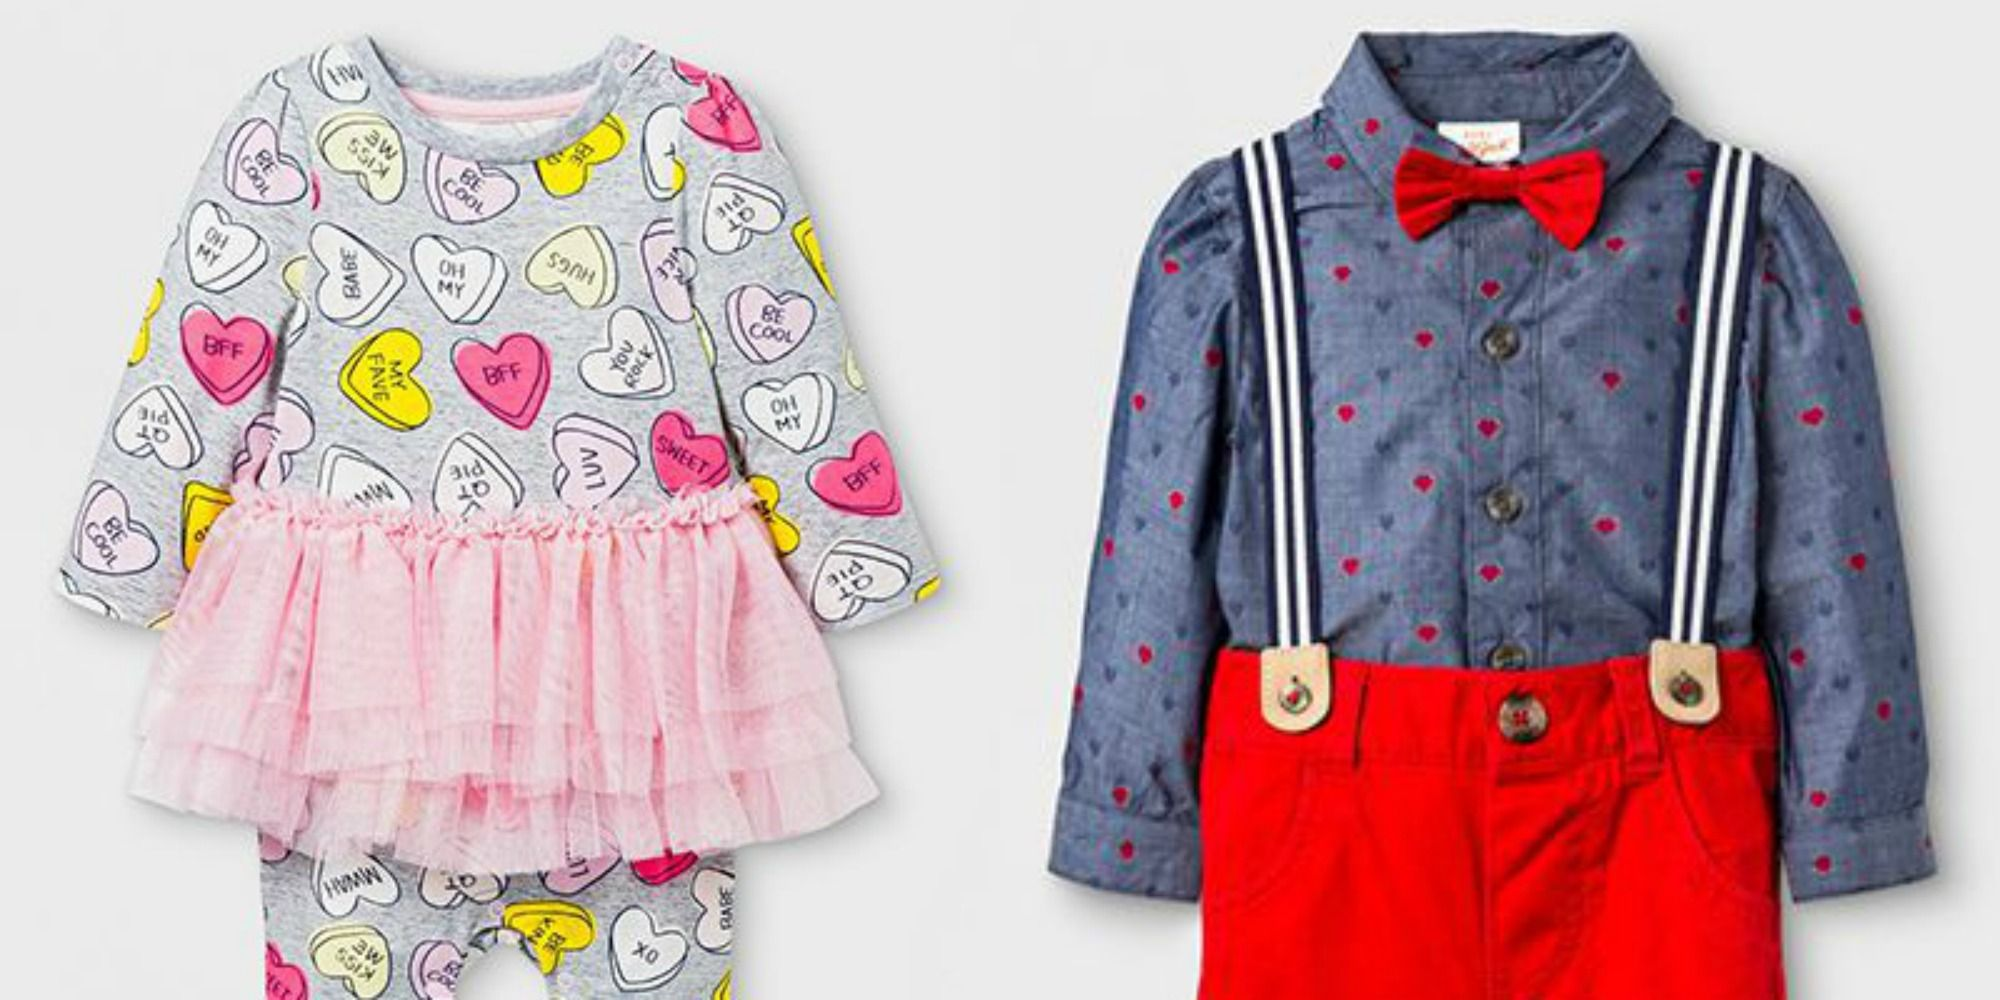 Baby Valentine S Day Outfits 2019 Infant And Newborn Clothes For V Day